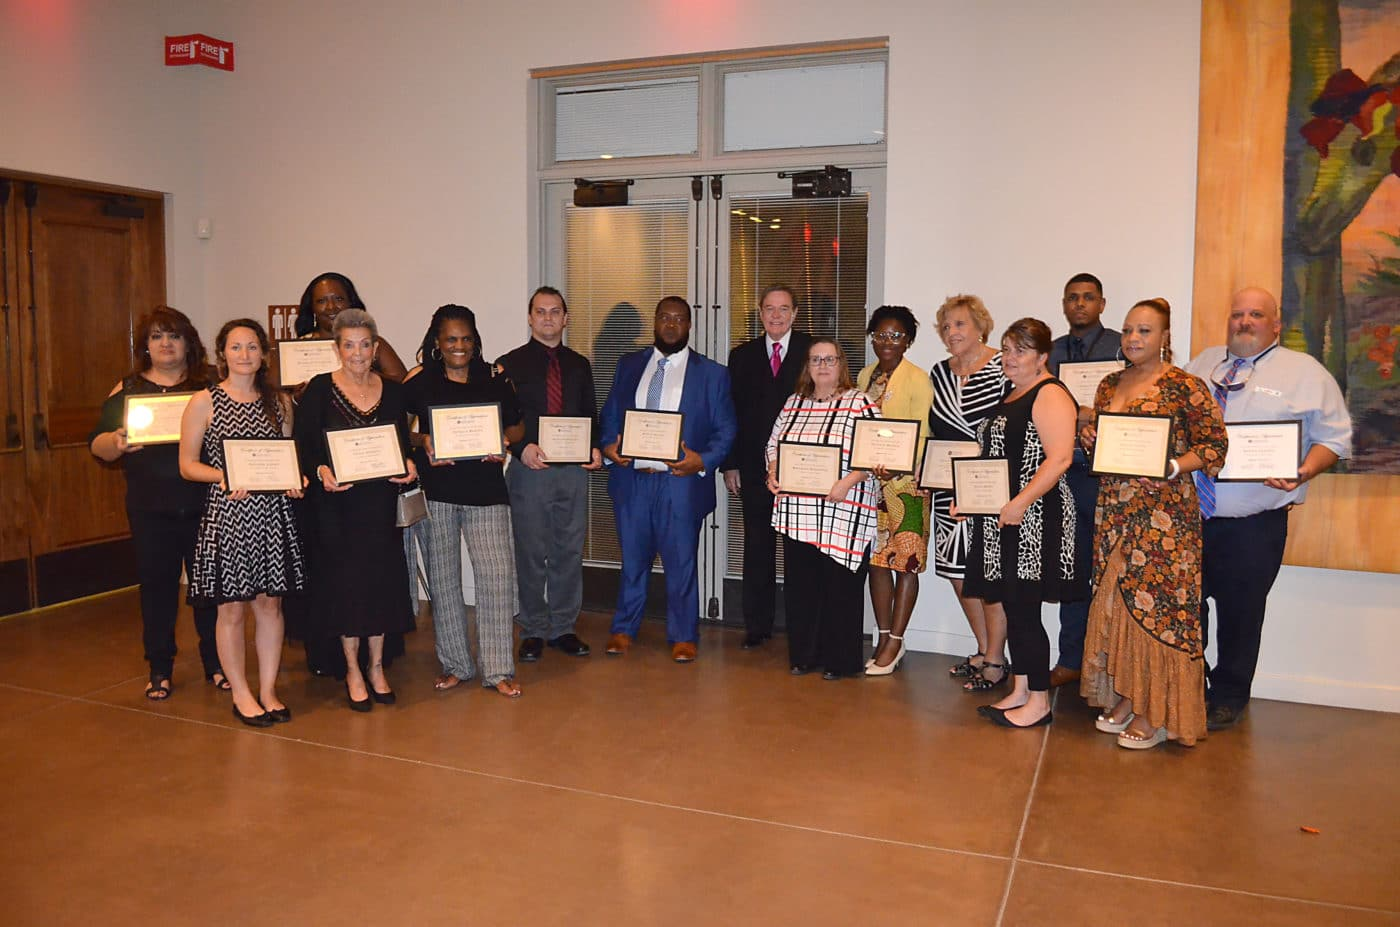 Community Options, Inc. seeks to recognize employees who exemplify excellence. Award winners are honored at the 2018 annual iMatter Conference.